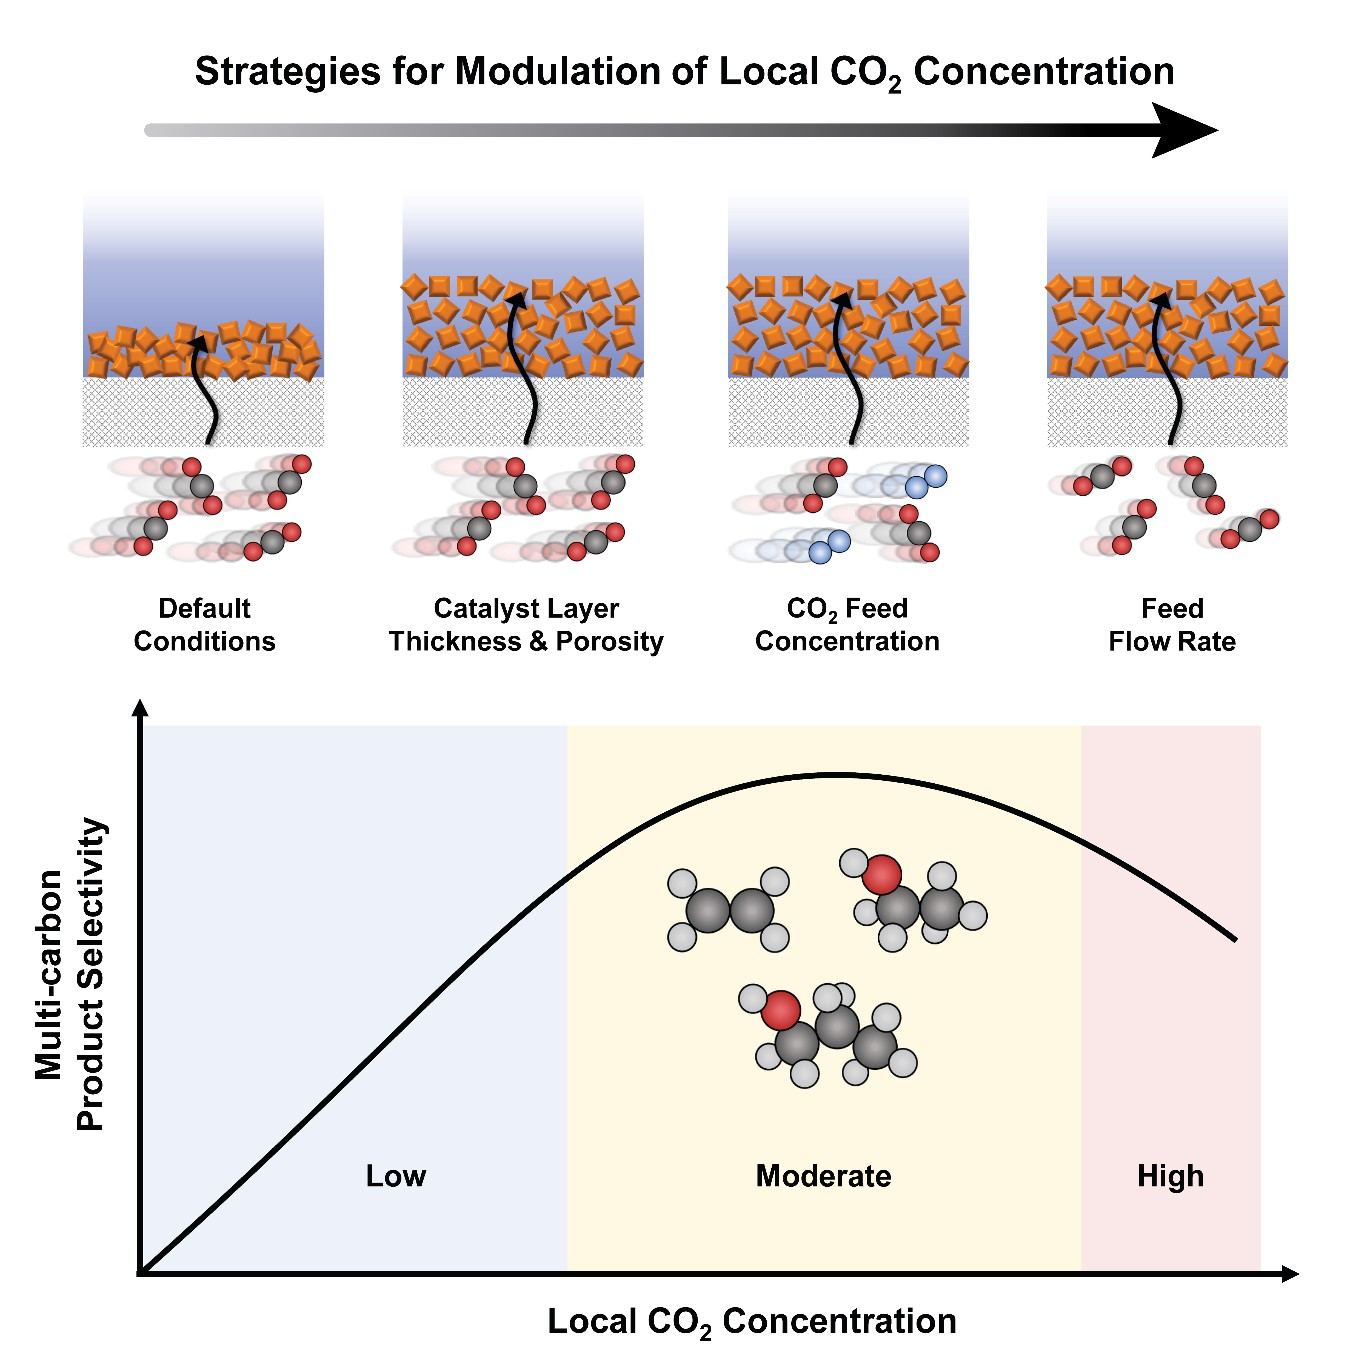 Figure. Three strategies employed in this study to modulate local CO2 concentration in a catalyst layer (top) and the relationship between local CO2 concentration and the selectivity for multi-carbon products (bottom). Note that maximum selectivity is achieved at a moderate local CO2 concentration.